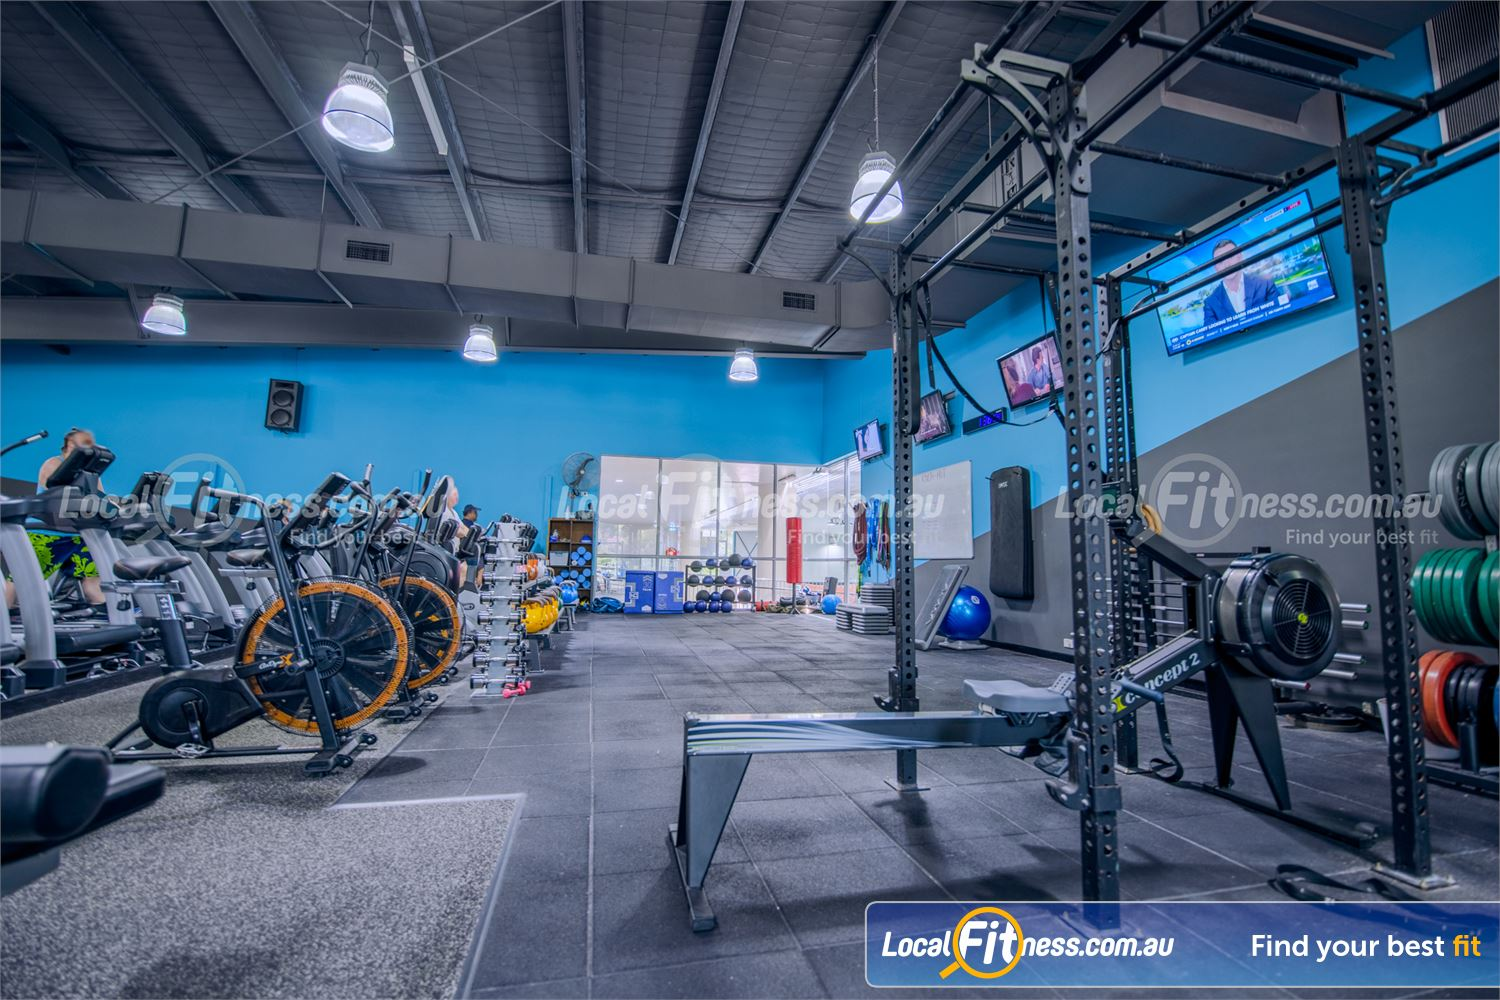 Knox Leisureworks Boronia Welcome to our functional training HIIT gym space in Boronia.